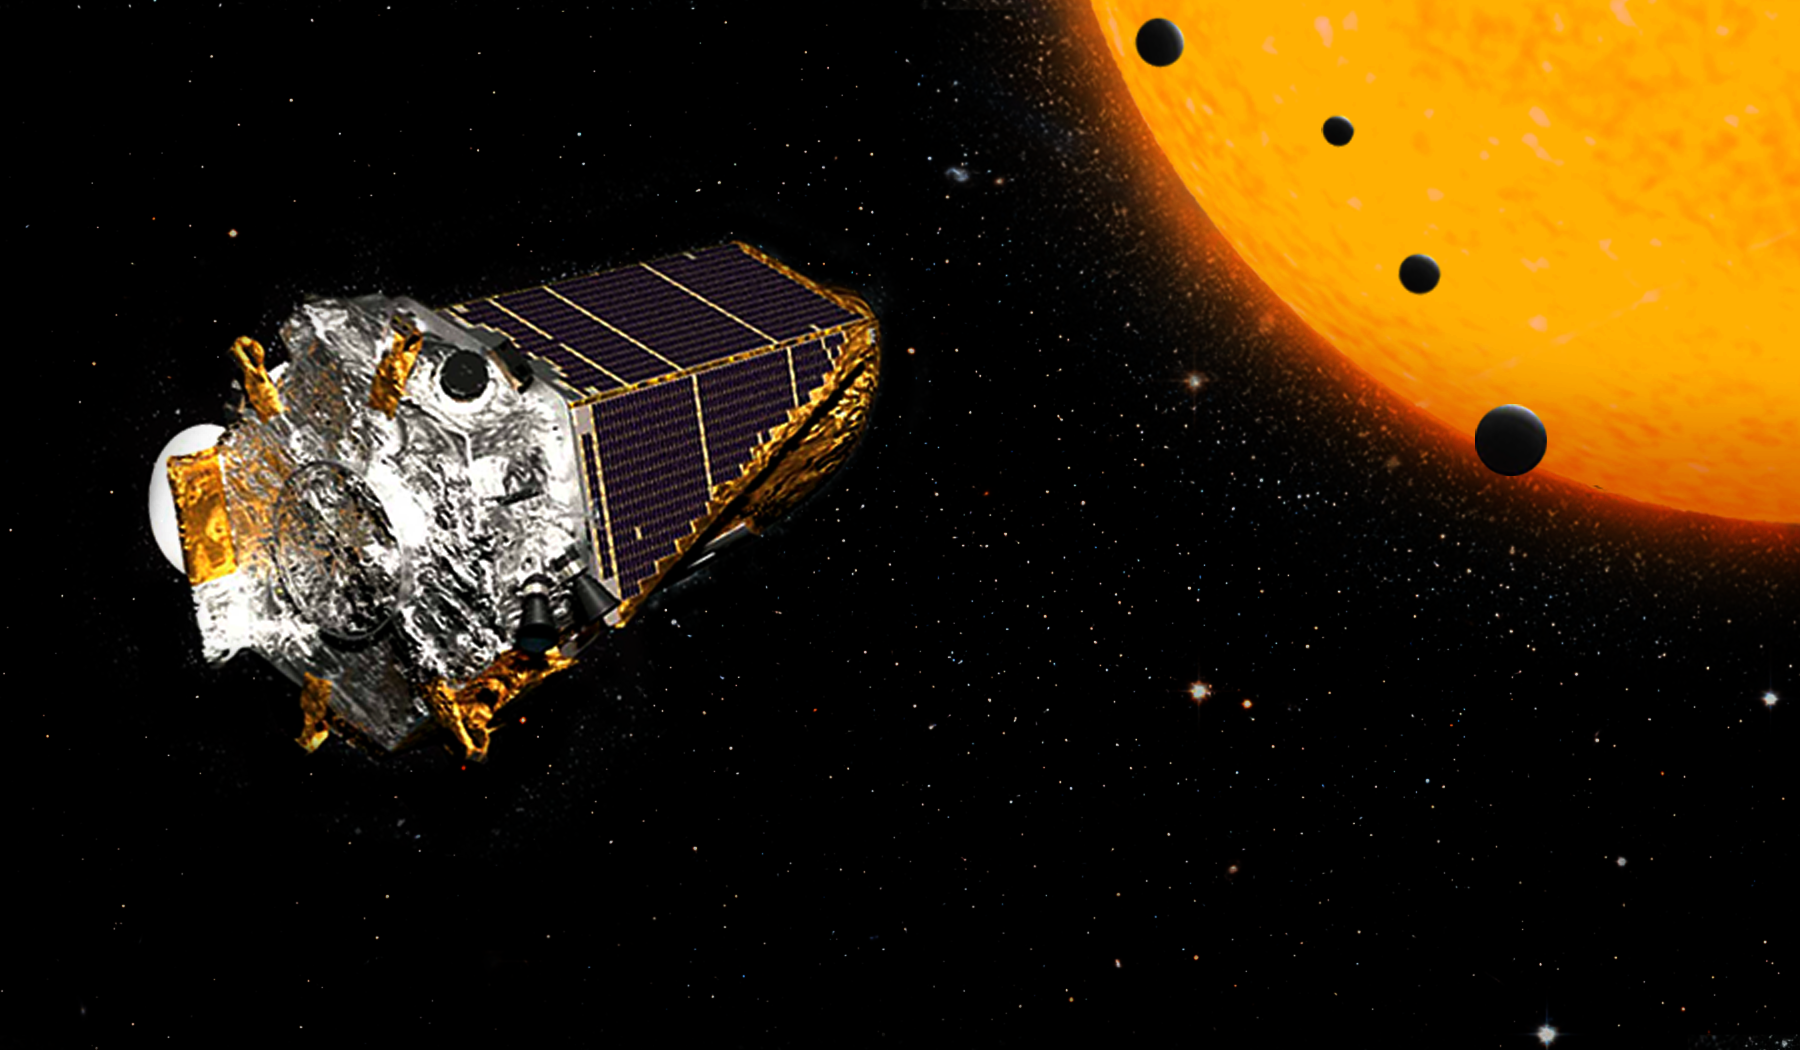 """Artist concept. A crop of more than 100 planets, discovered by NASA's Kepler Space Telescope, includes four in Earth's size-range orbiting a single dwarf star. Two of these planets are too hot to support life as we know it, but two are in the star's """"habitable"""" zone, where liquid water could exist on the surface. These small, rocky worlds are far closer to their star than Mercury is to our sun. But because the star is smaller and cooler than ours, its habitable zone is much closer. One of the two planets in the habitable zone, K2-72c, has a """"year"""" about 15 Earth-days long—the time it takes to complete one orbit. This closer planet is likely about 10% warmer than Earth. On the second, K2-72e, a year lasts 24 Earth days, this slightly more distant planet would be about 6% colder than Earth.- Image Credits: NASA/JPL"""